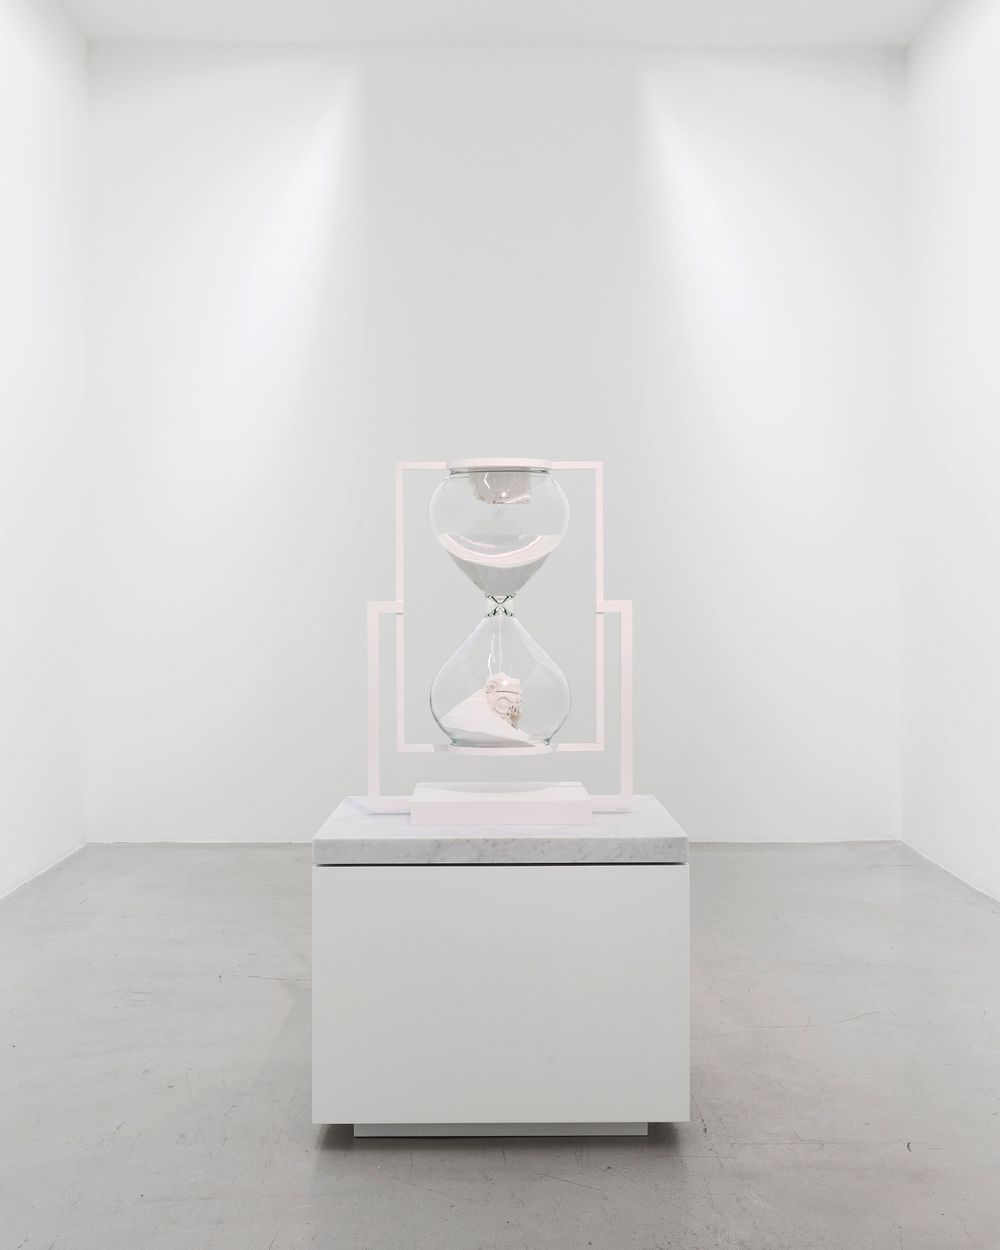 Artist:Daniel ARSHAM, Exhibition:The Angle of Repose